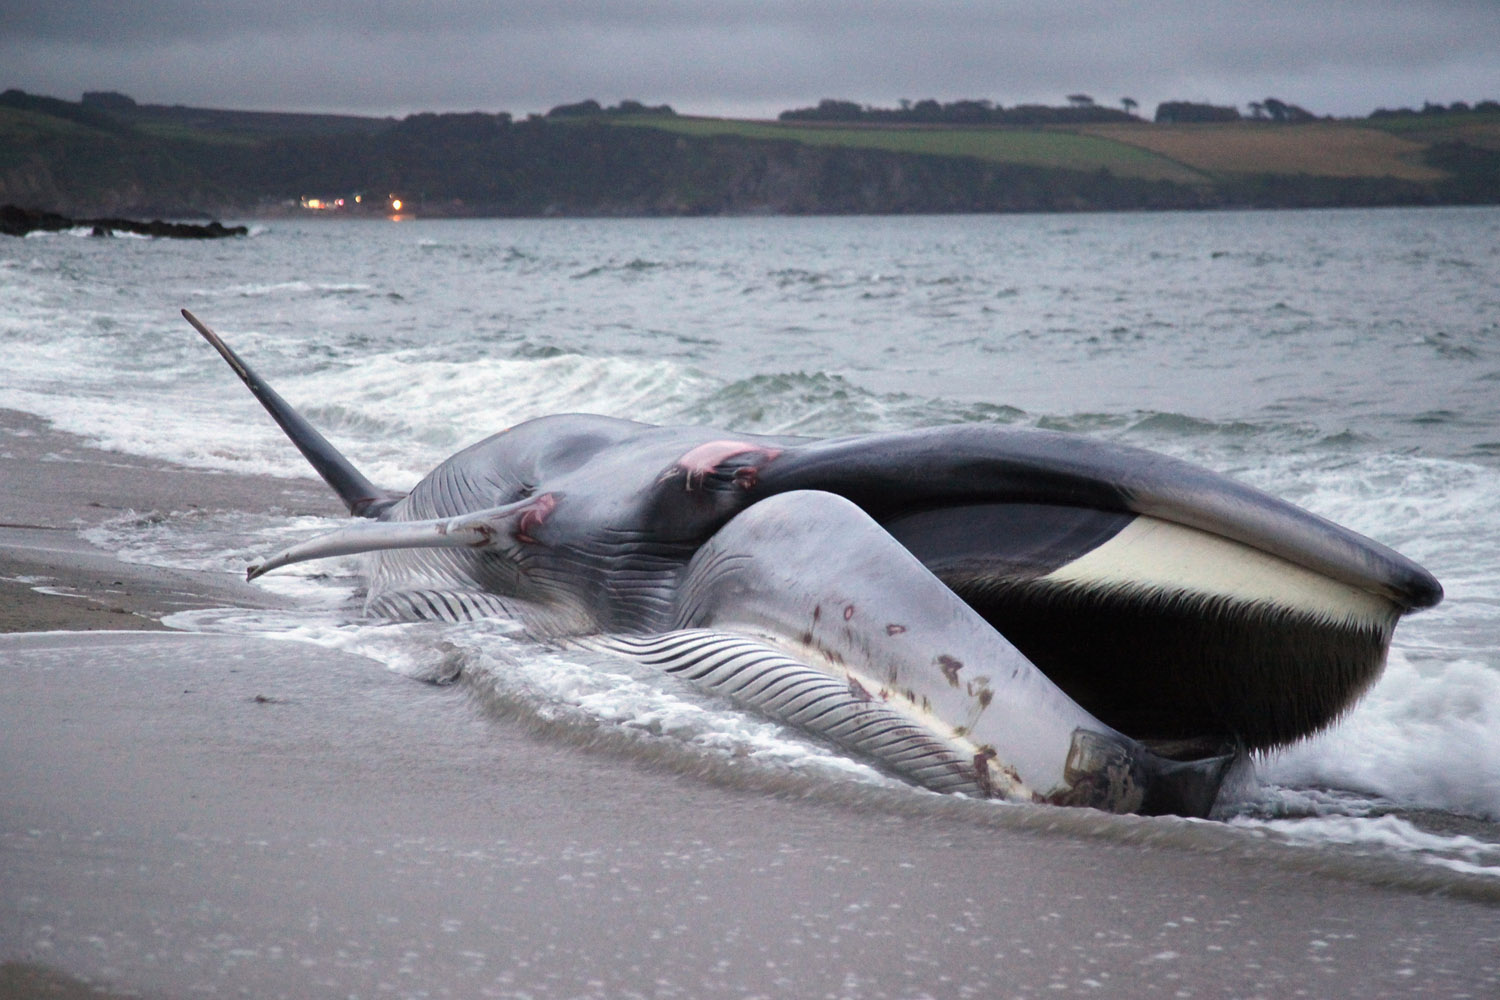 Aug. 13, 2012. A female fin whale opens its mouth as it lies stranded and alive on the beach at Carlyon Bay on in St Austell, England.